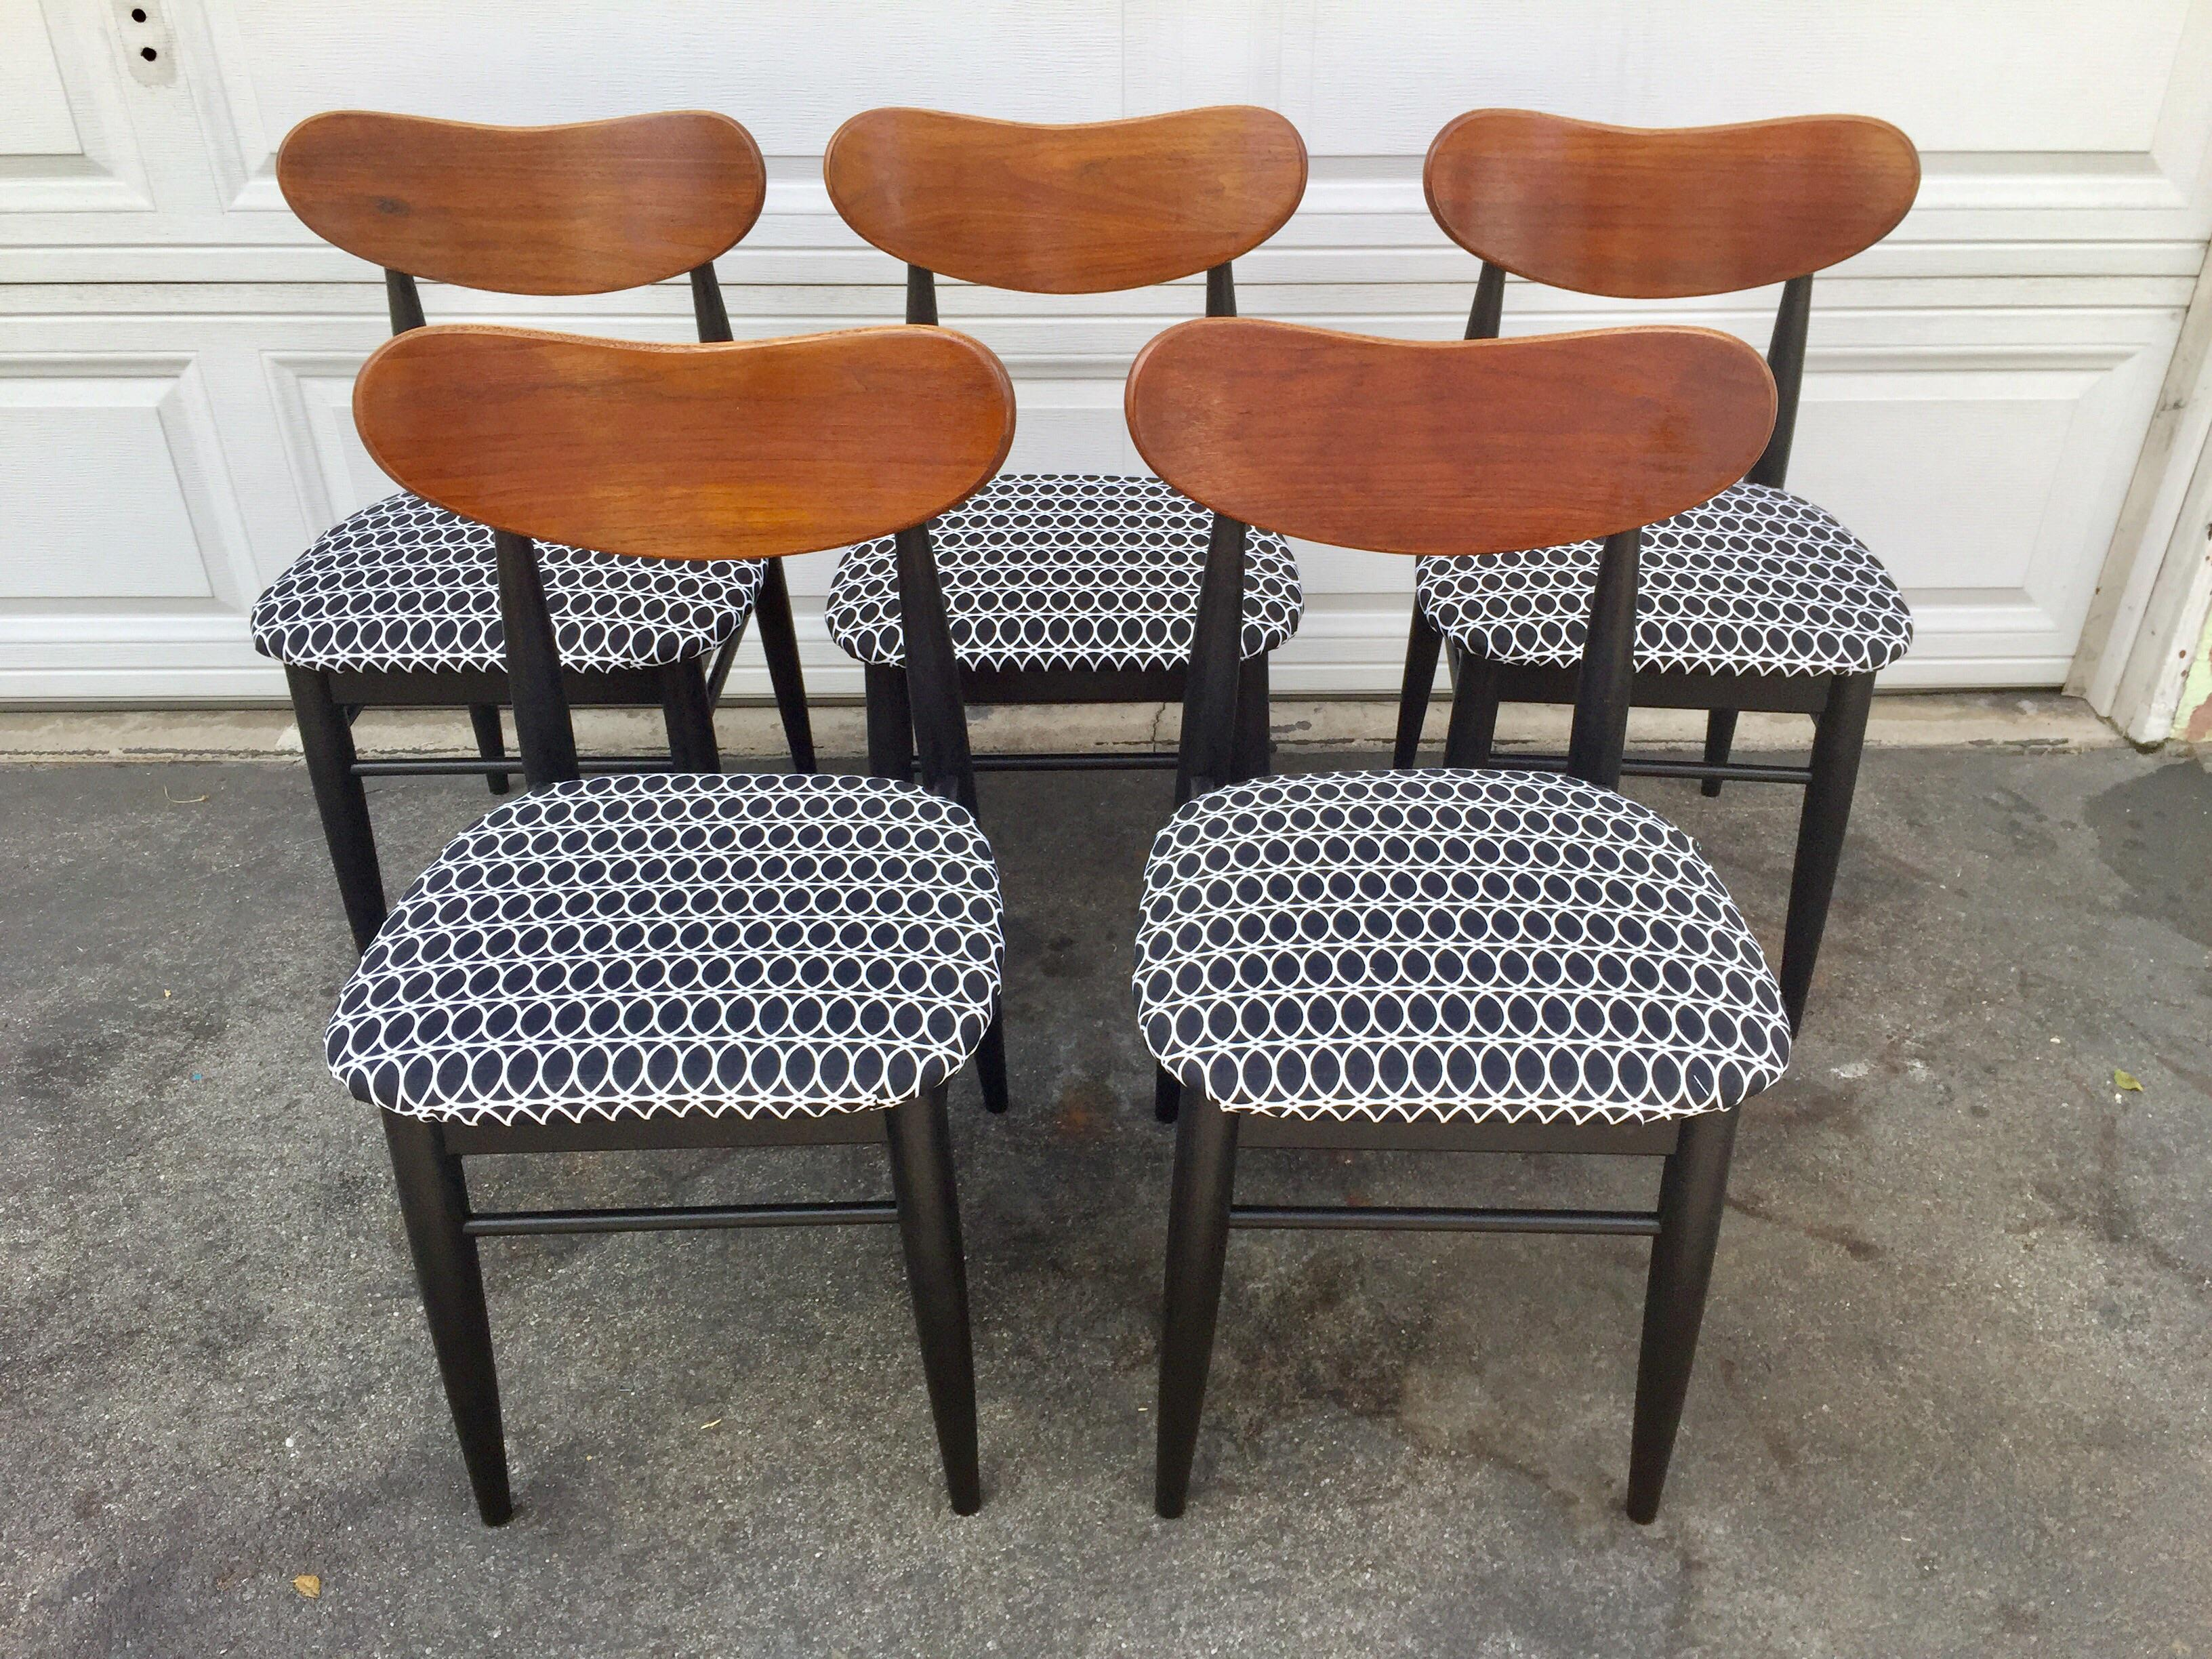 Vintage Walter Wabash Chairs   Set Of 5   Image 2 Of 6